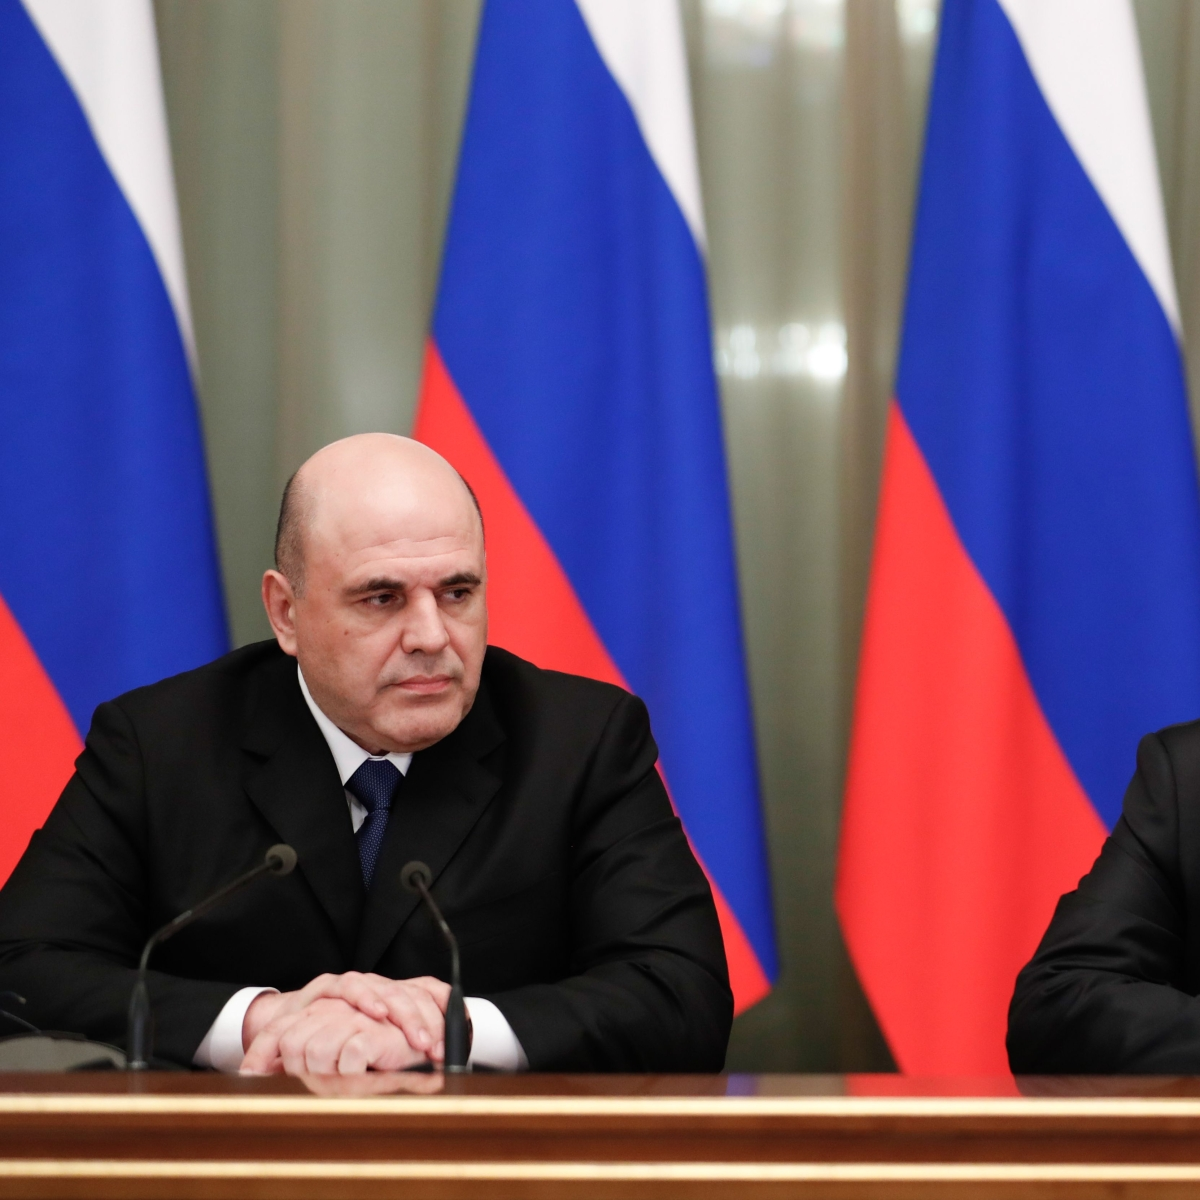 Putin appoints new Russian cabinet members